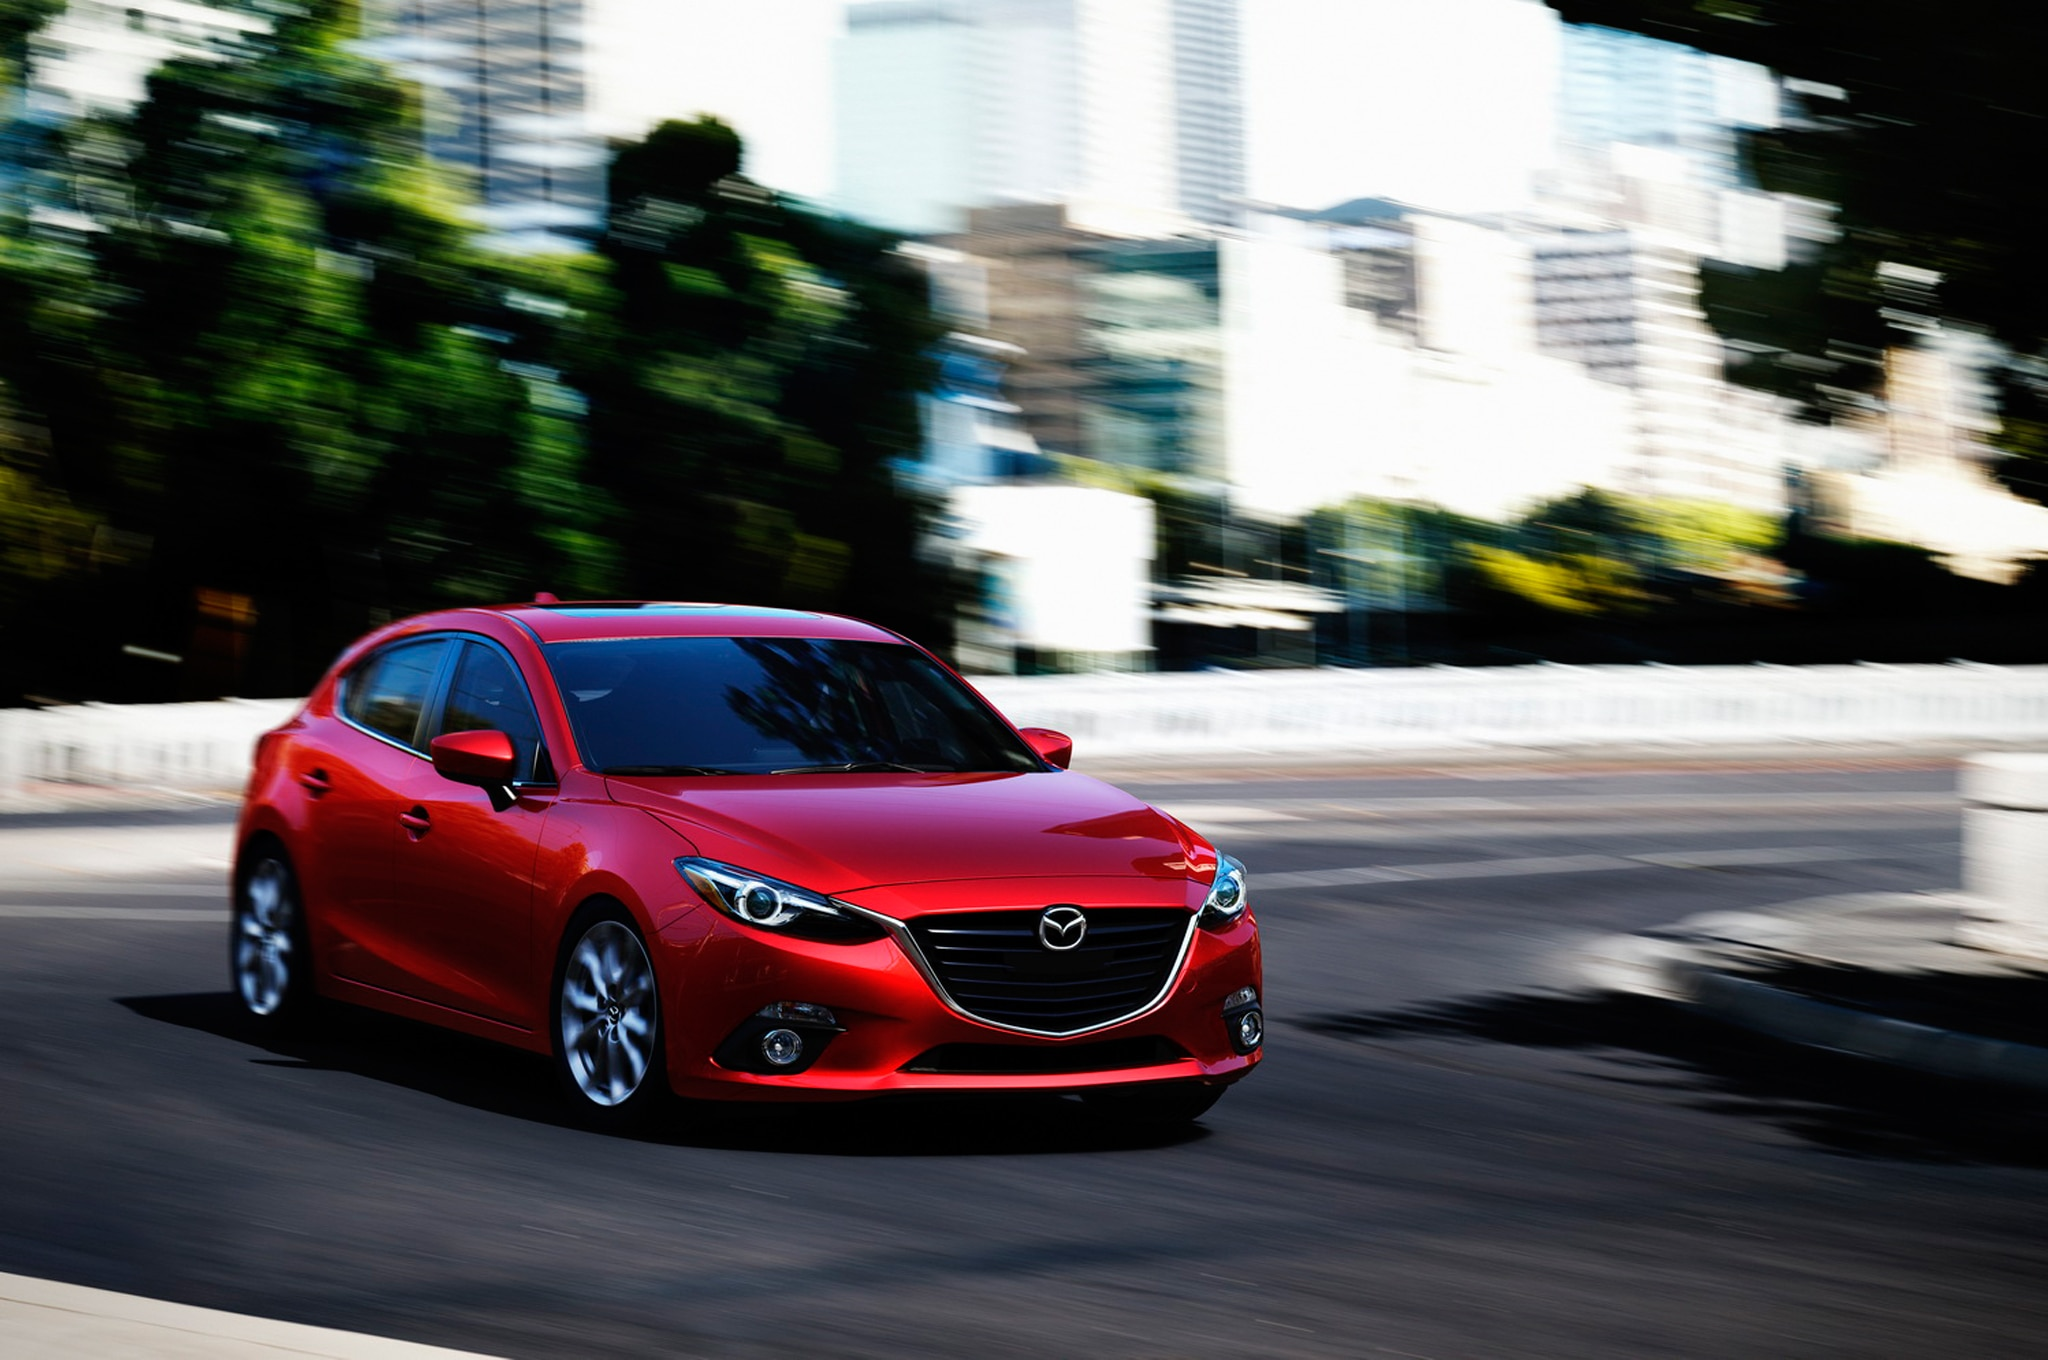 2014 Mazda3 Front End In Motion1